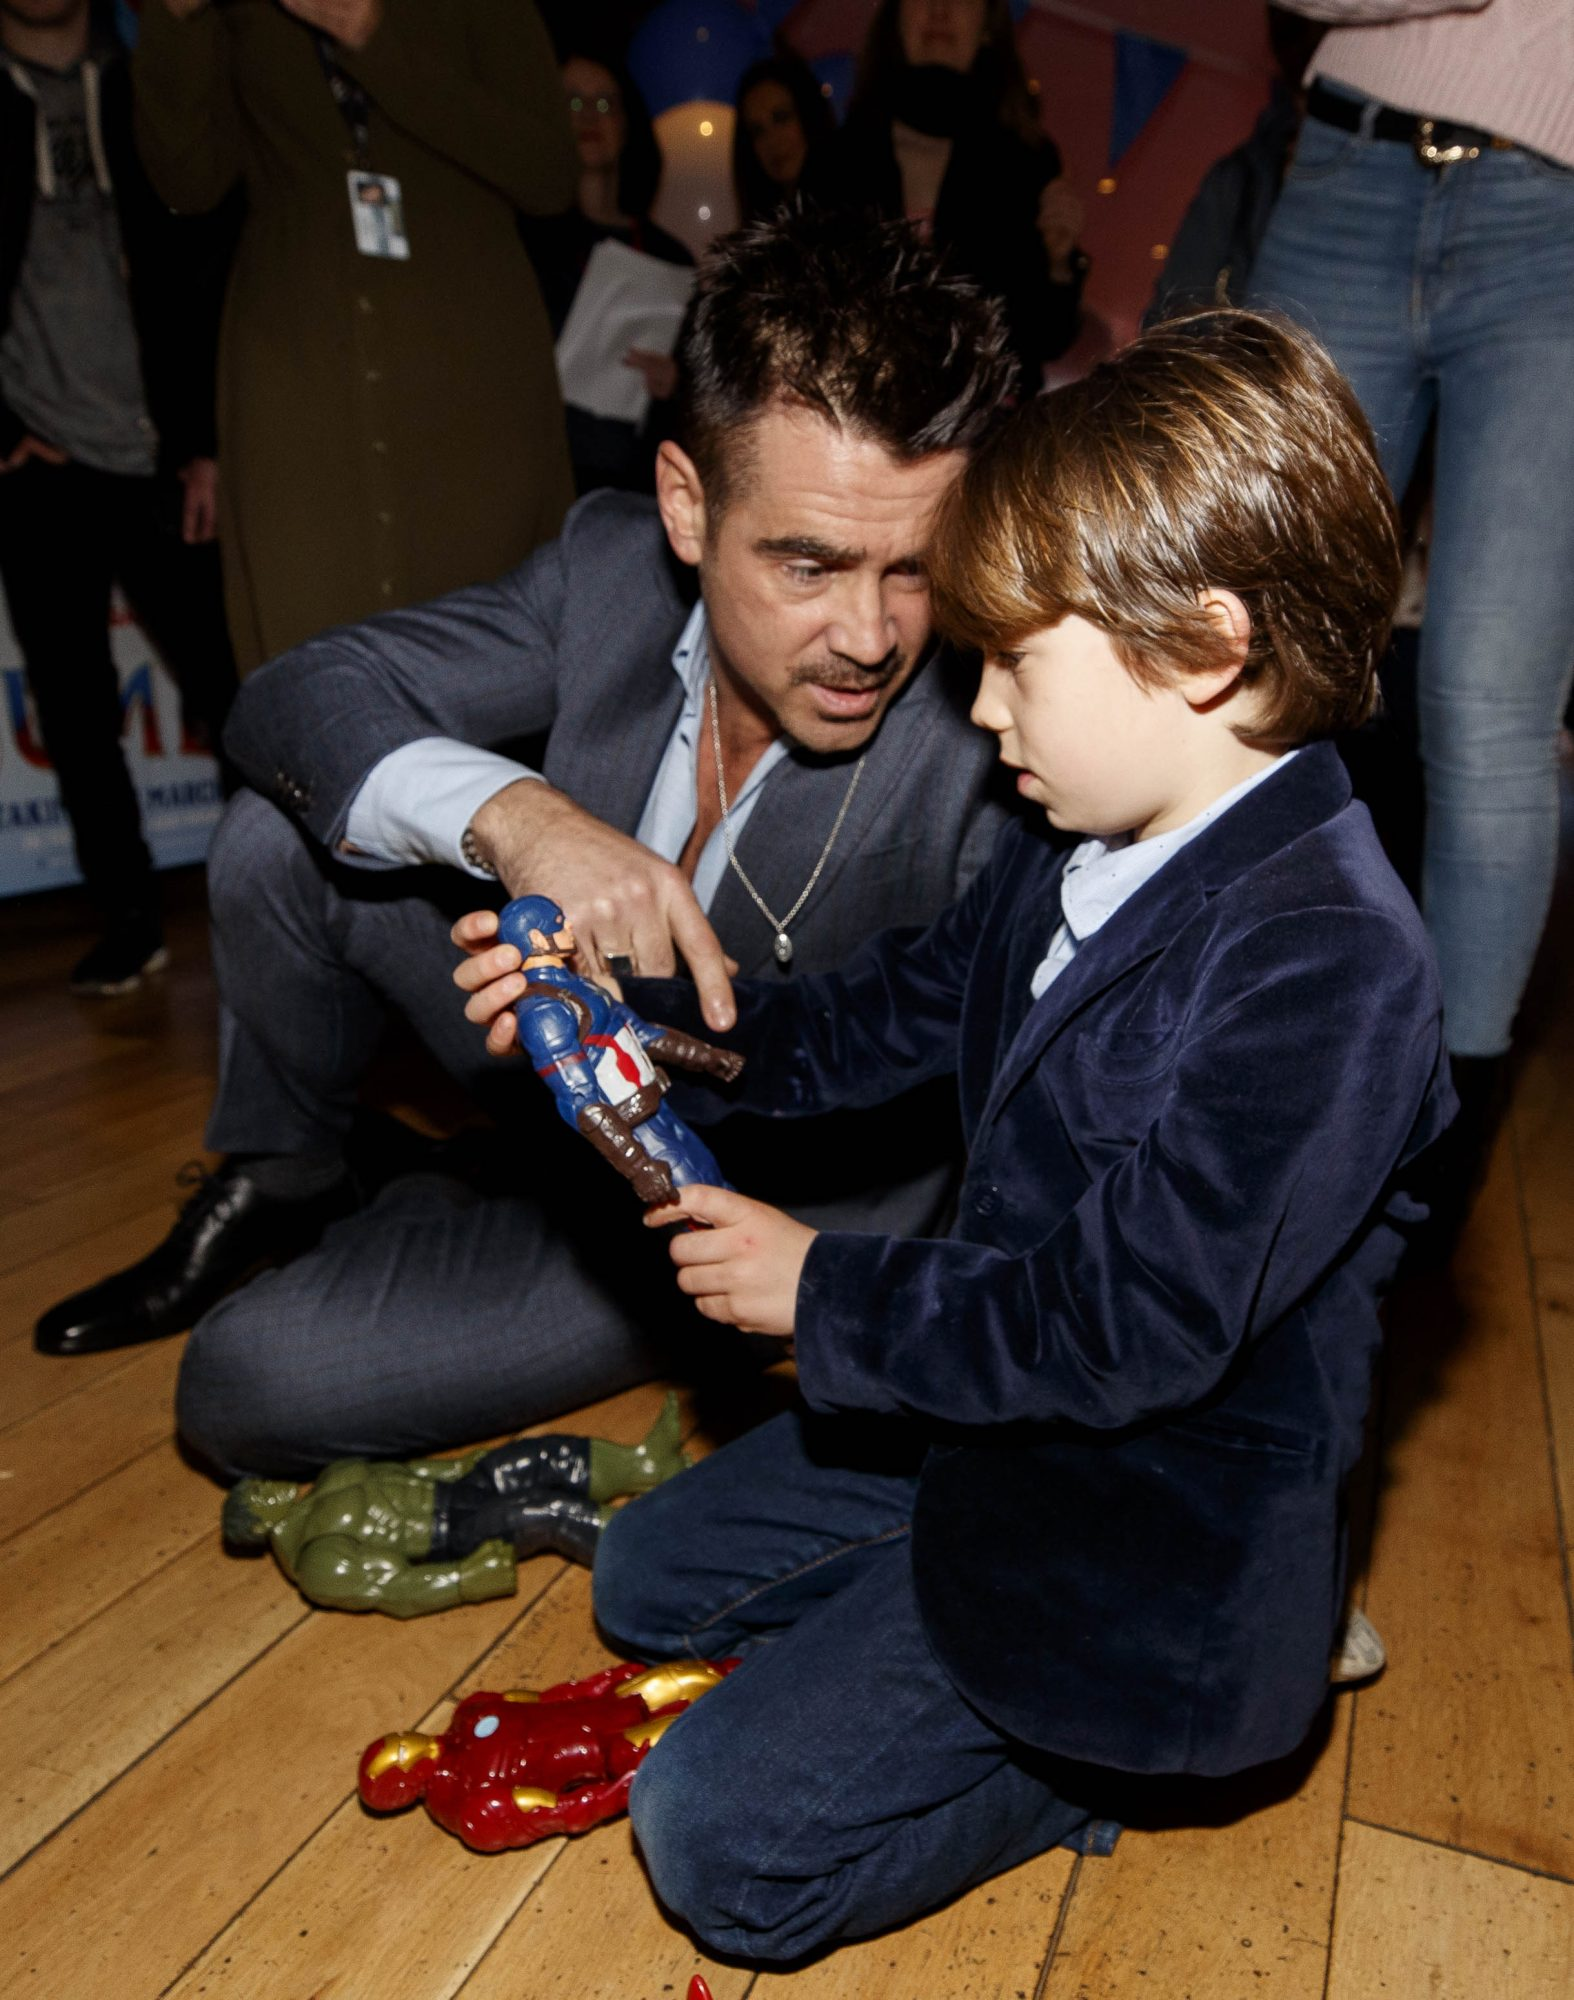 24/03/2019 Colin Farrell takes a few minutes to play Casper Quick (6) at the Irish Premiere screening of Disney's DUMBO in the Light House Cinema Dublin. Picture: Andres Poveda